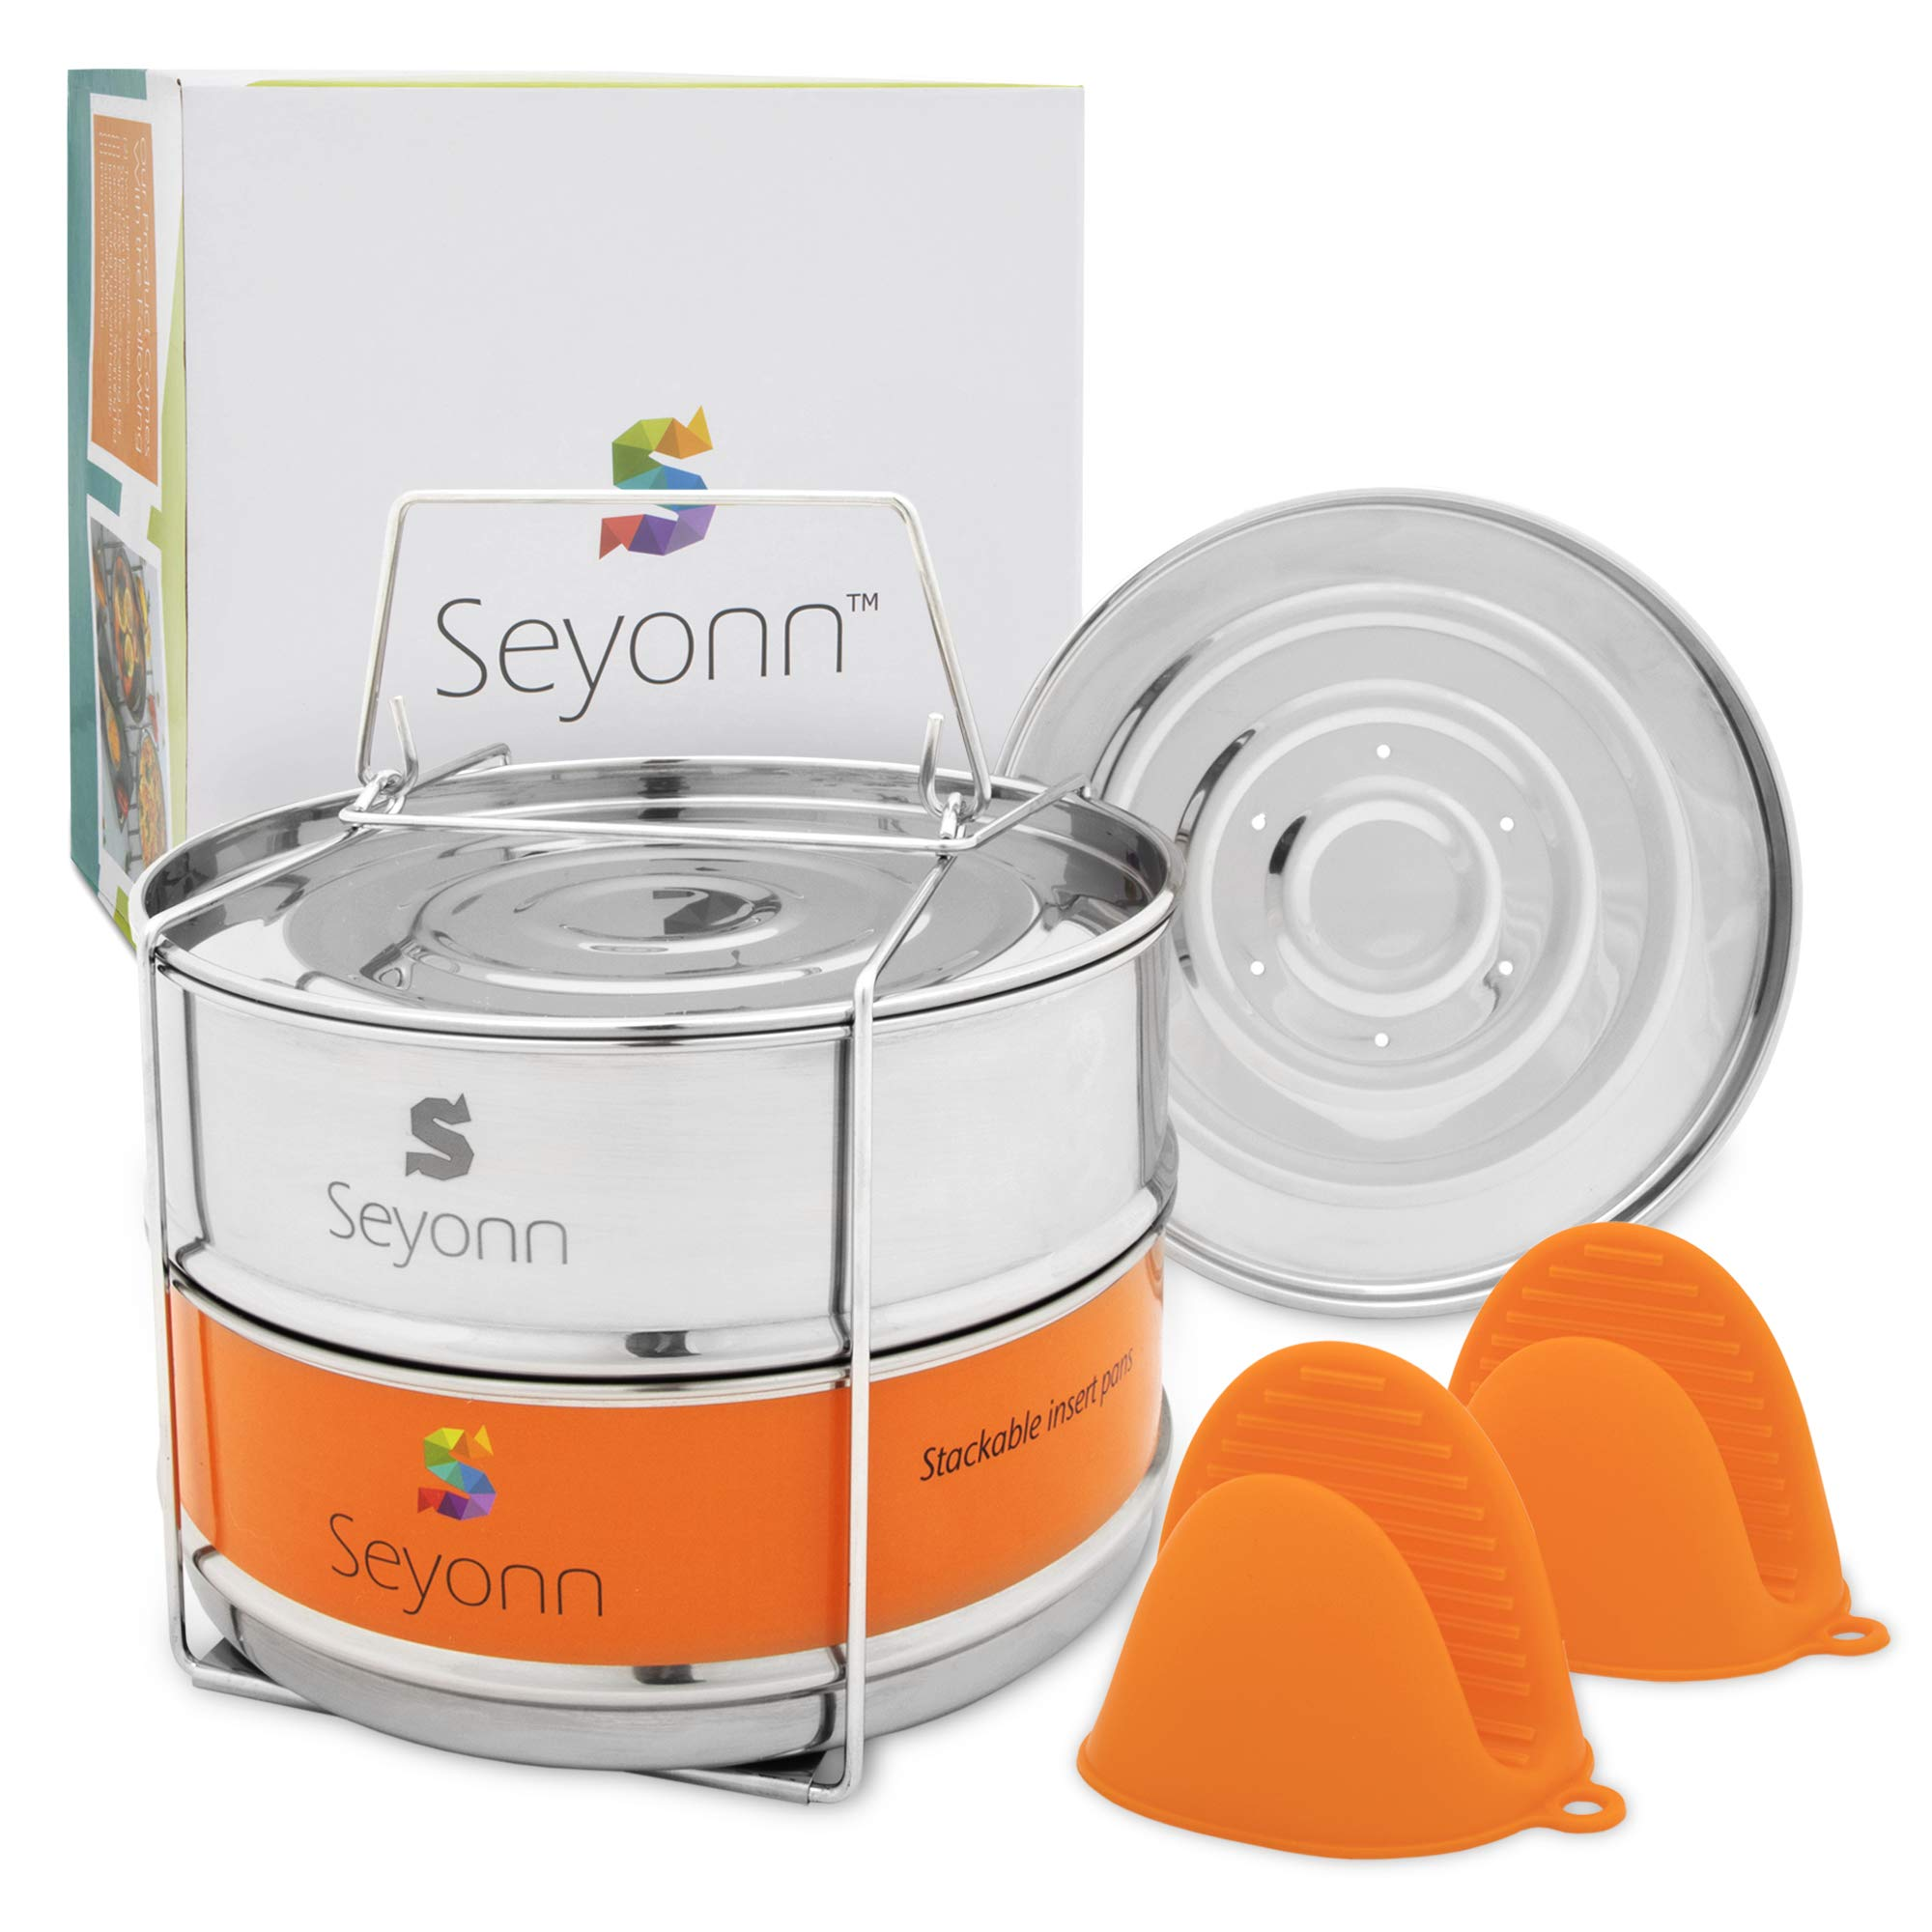 Seyonn Stackable Steamer Insert Pans, 2 BPA-Free Food Steamers Inserts, Stainless Steel, Food Grade with Lid, Handle for 5,6,8 qt, Pots, Pressure Cookers or Crock Pots, with Bonus Silicone Mitts by Seyonn